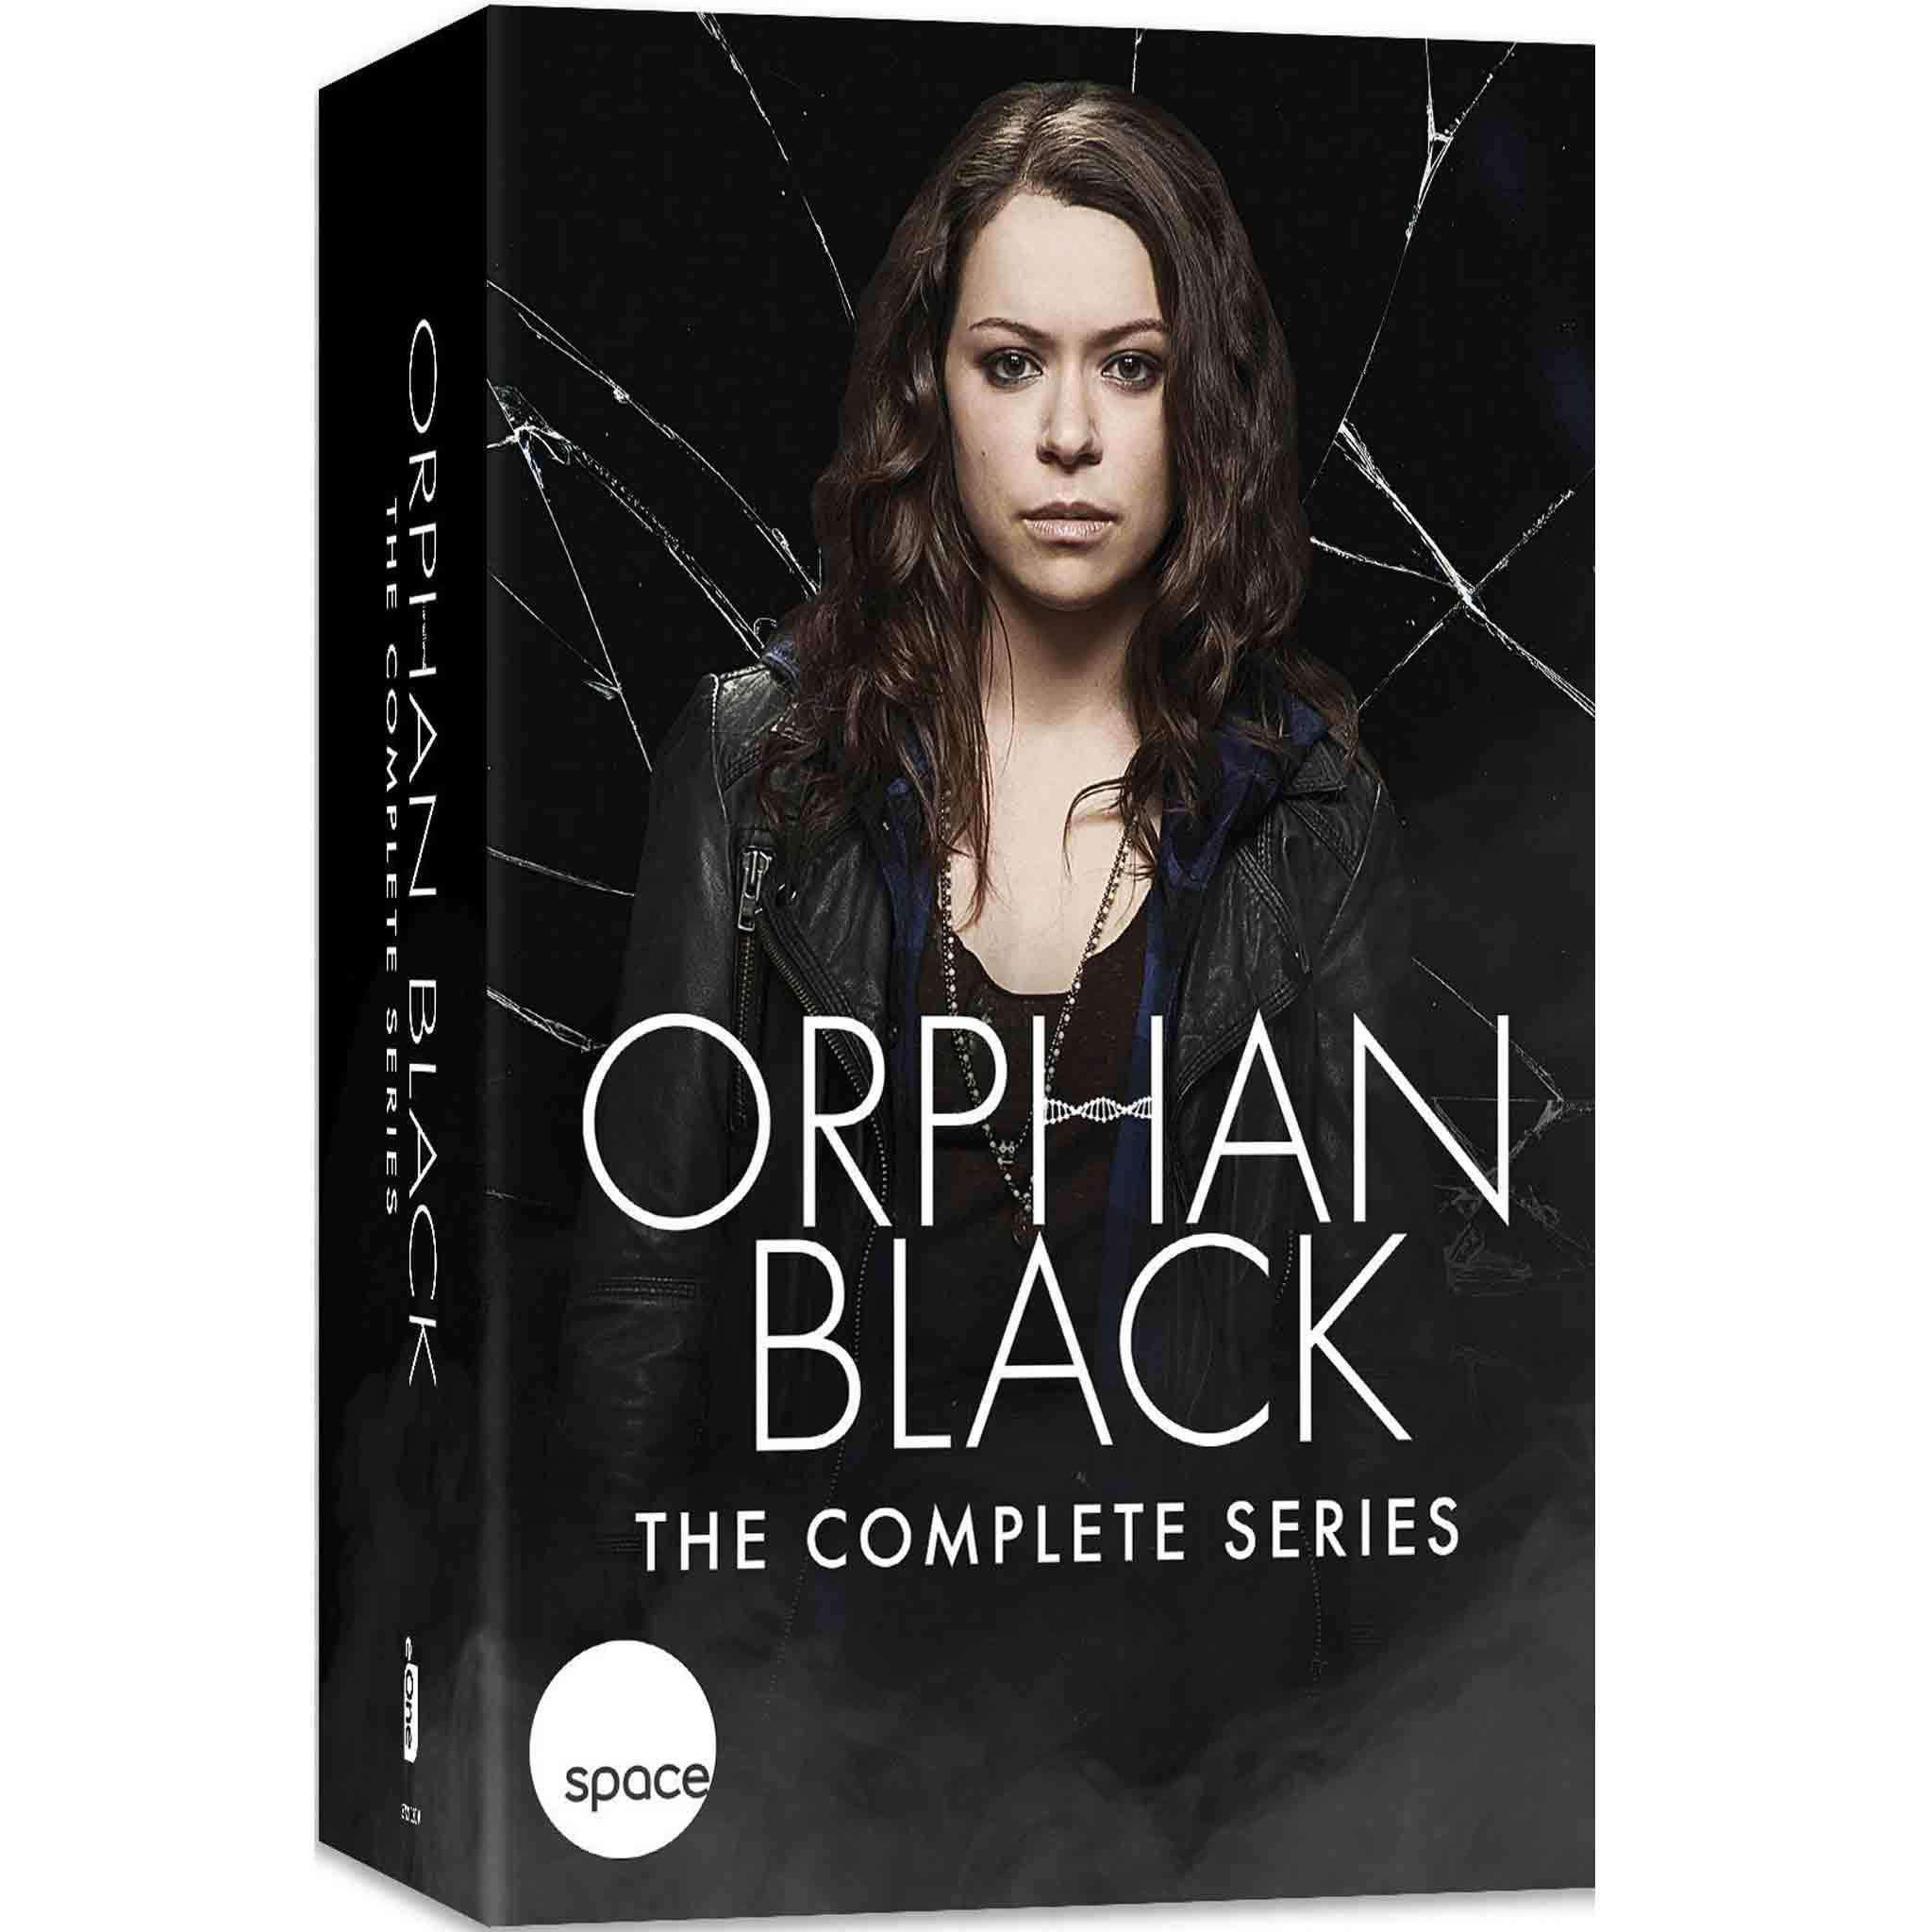 Orphan Black DVD Season 1-5 Complete Set BBC America DVDs & Blu-ray Discs > DVDs > Box Sets